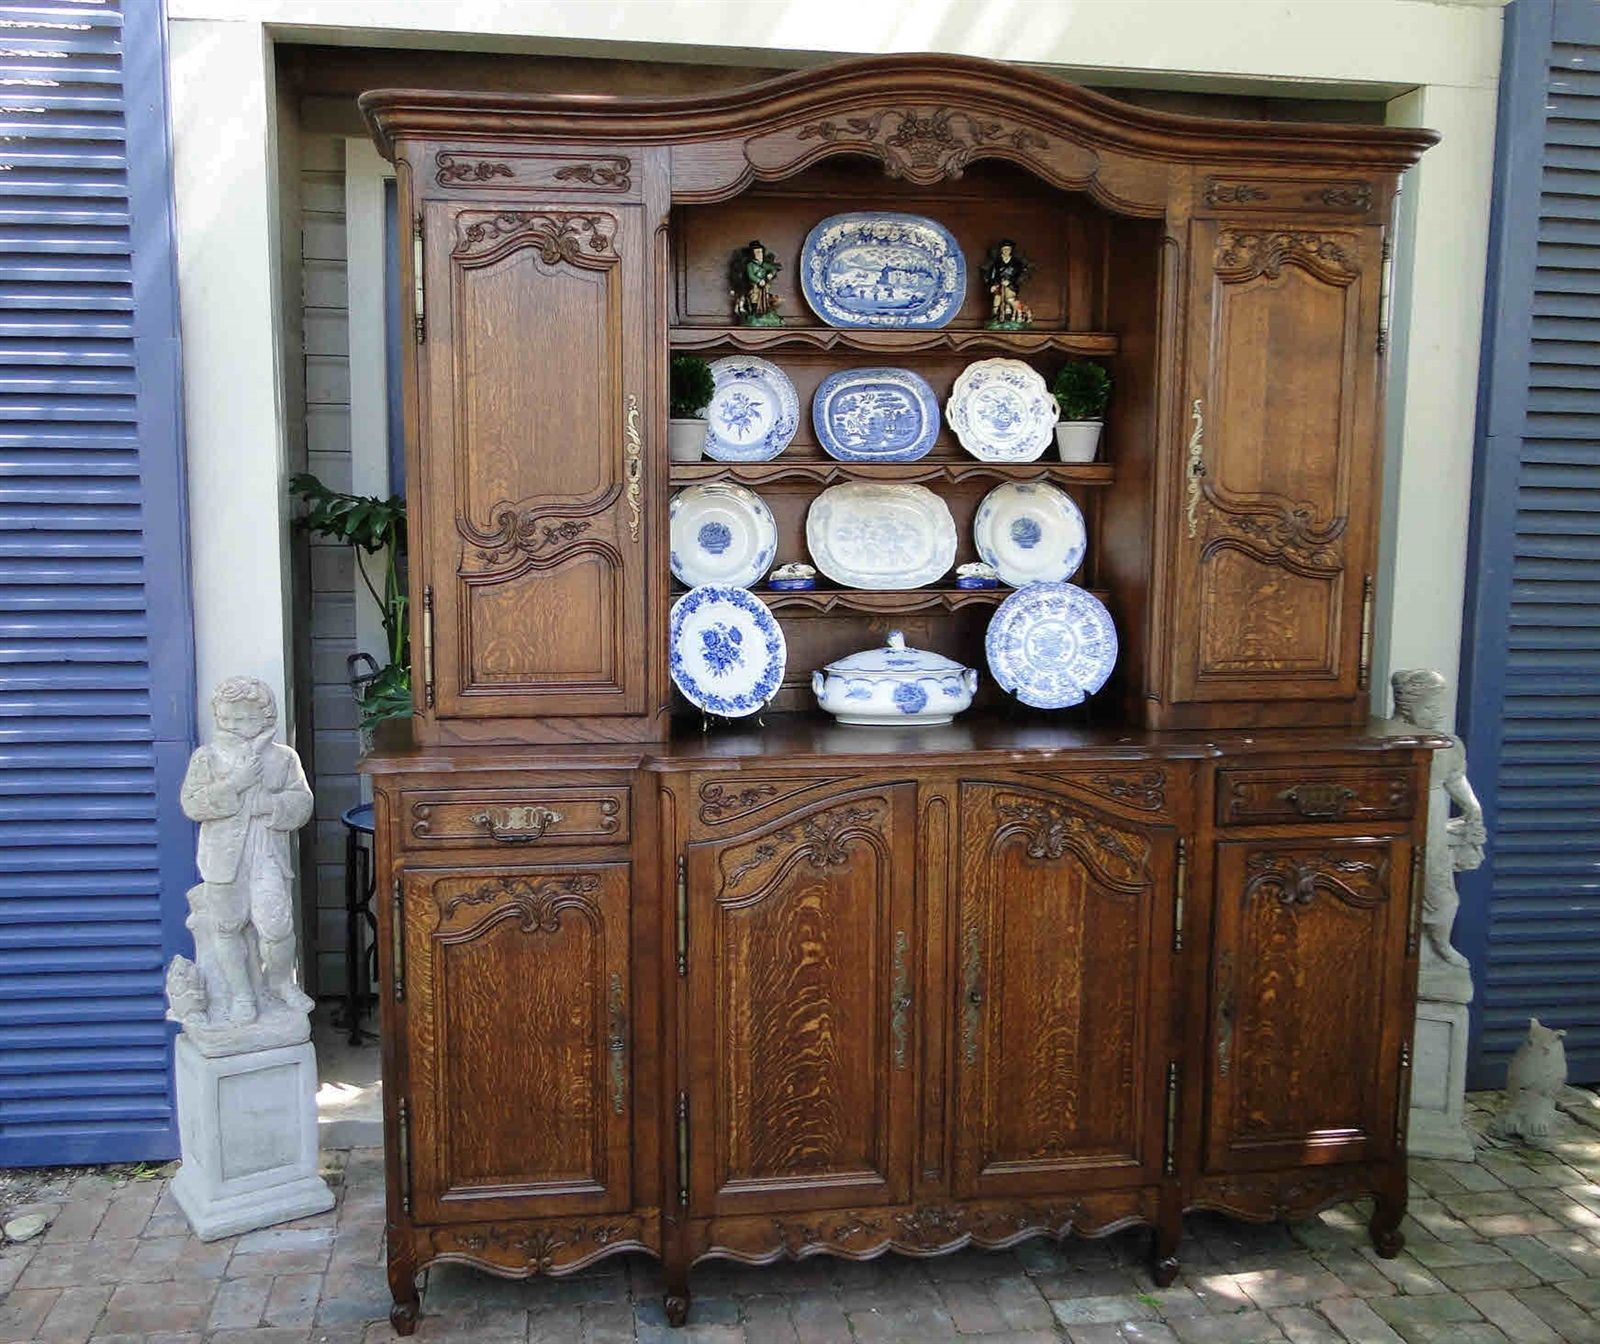 French Antique Hutch and Buffet Server with Carved Oak and Scalloped Apron Plus Shelves